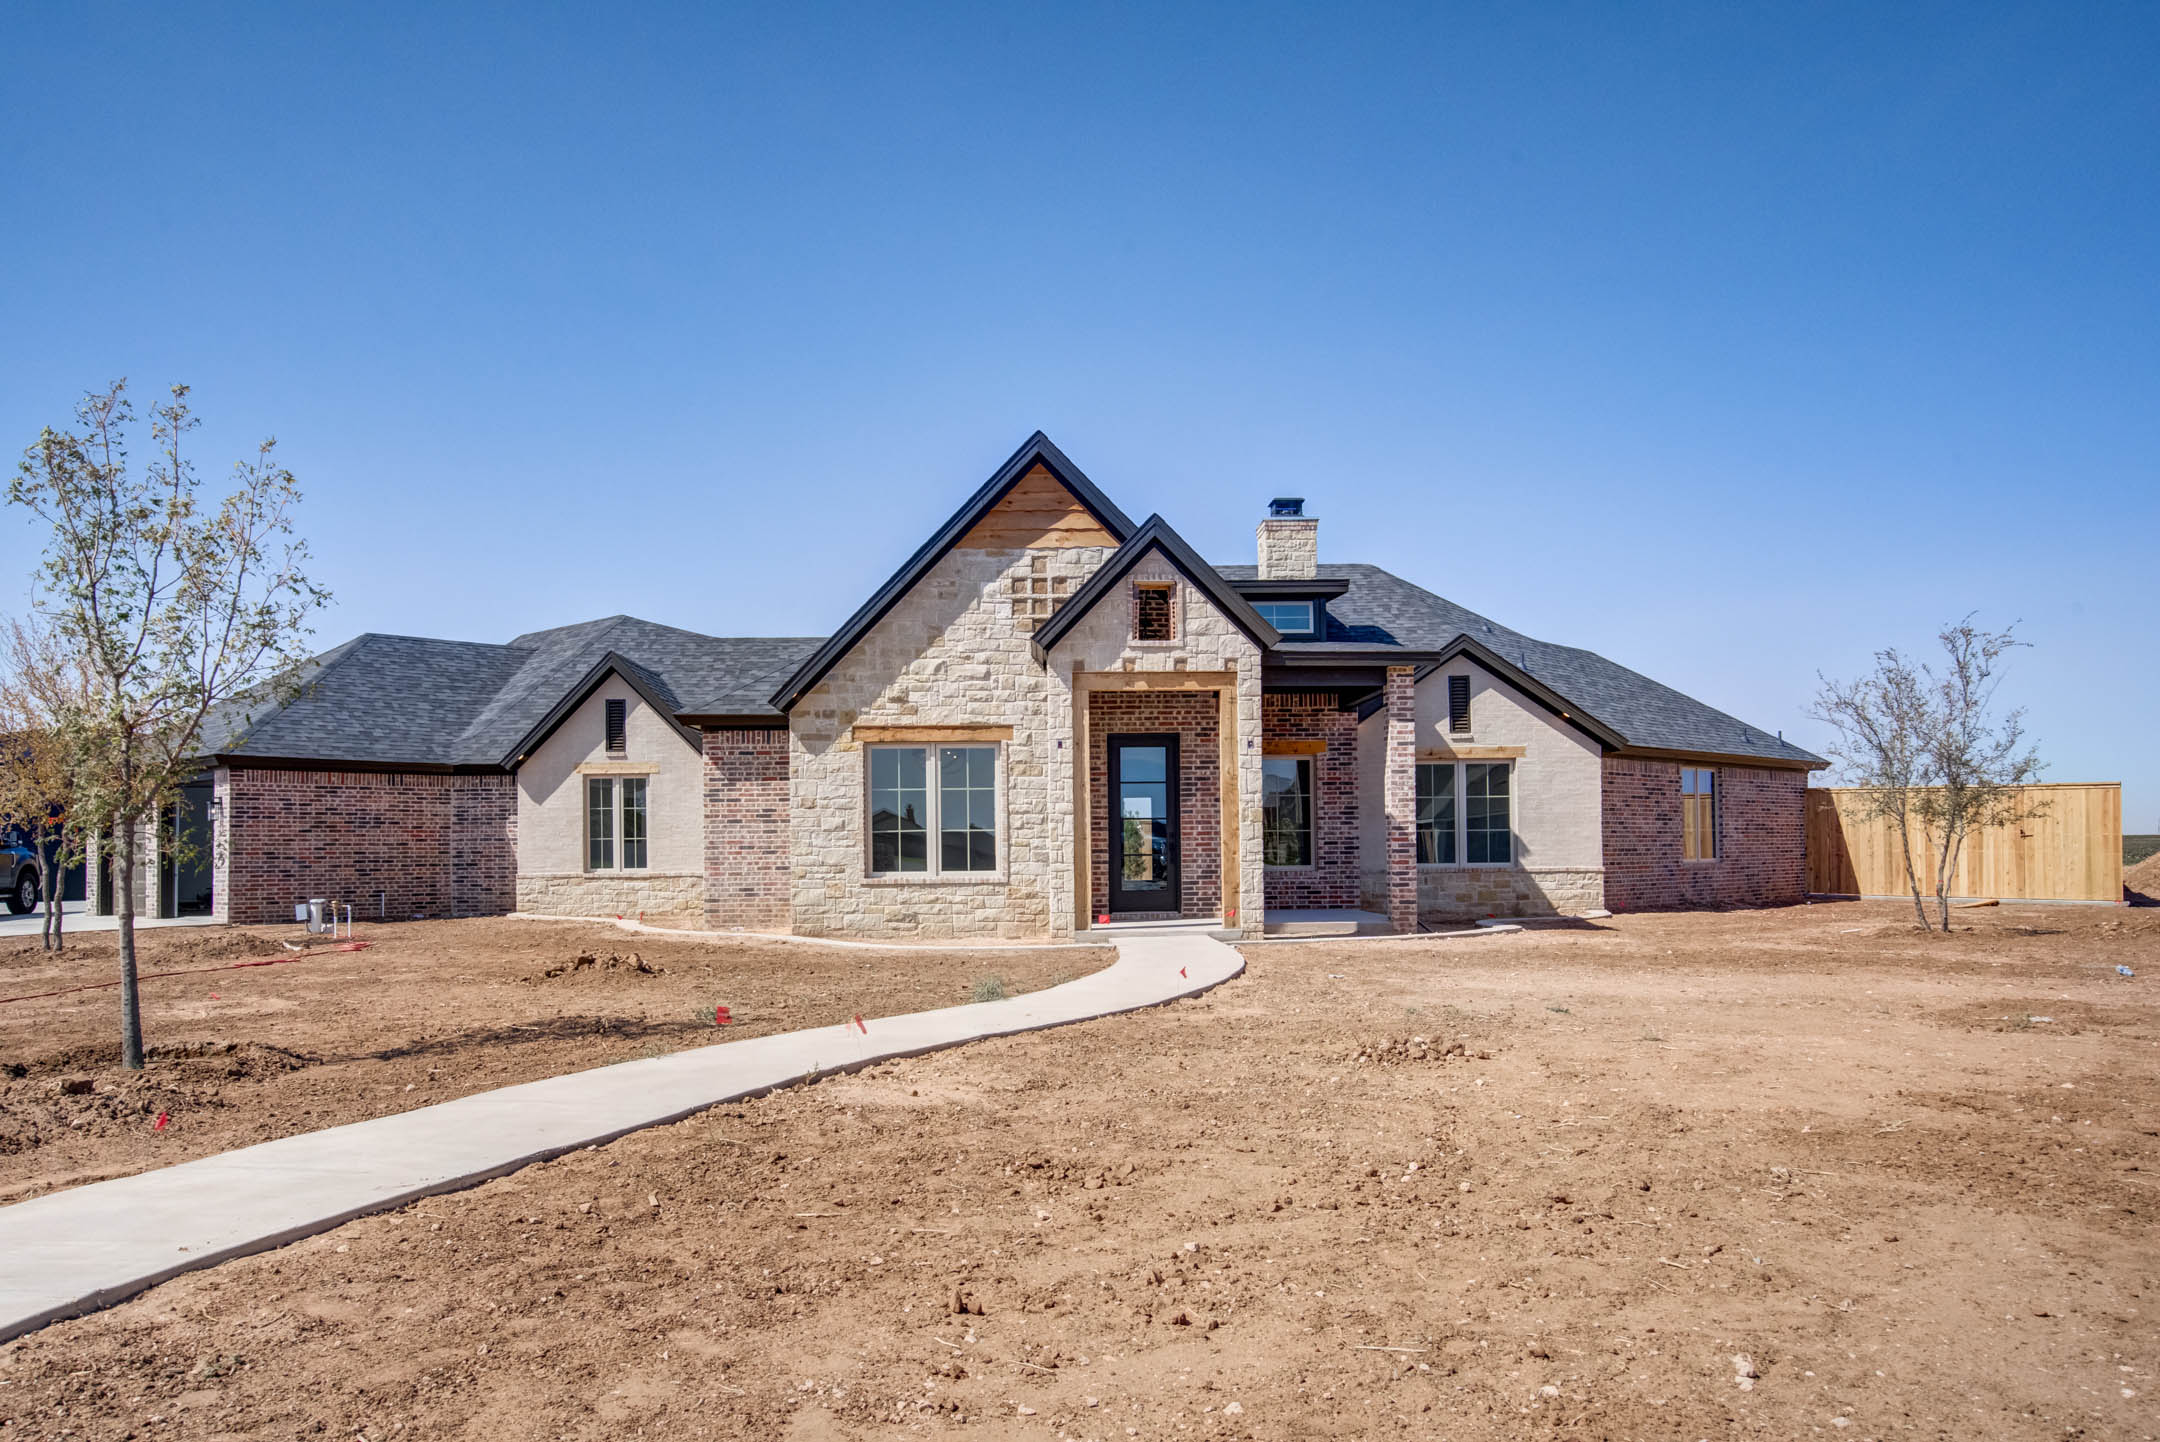 Exterior of beautiful house for sale in New Home, Texas.